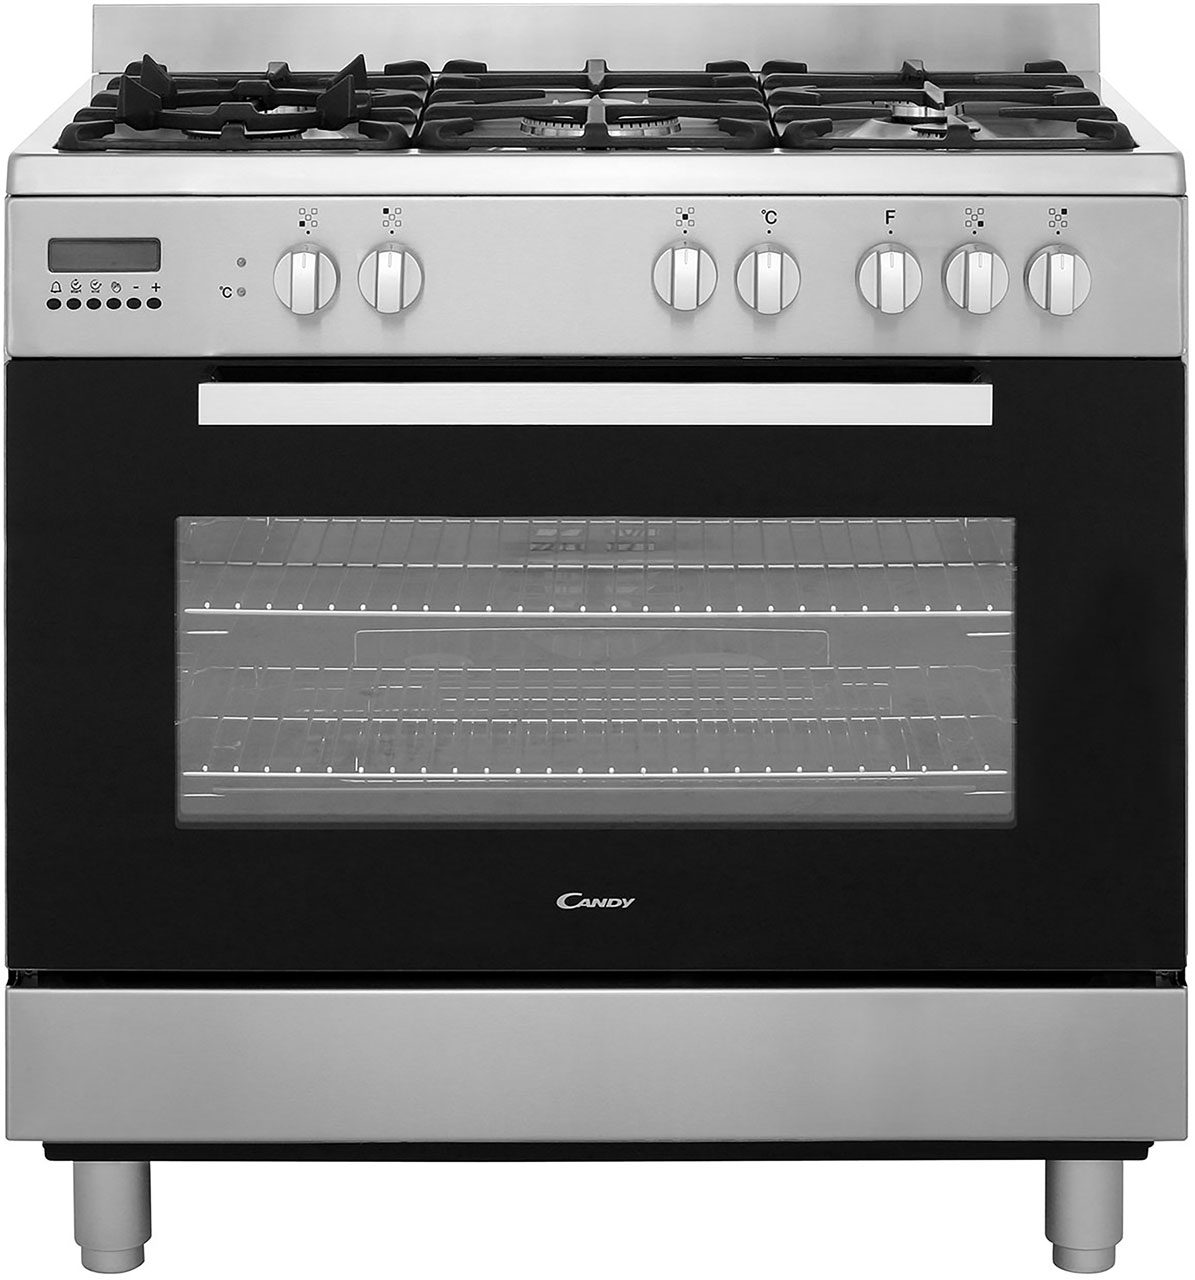 candy ccg9m52px 90cm dual fuel range cooker review. Black Bedroom Furniture Sets. Home Design Ideas